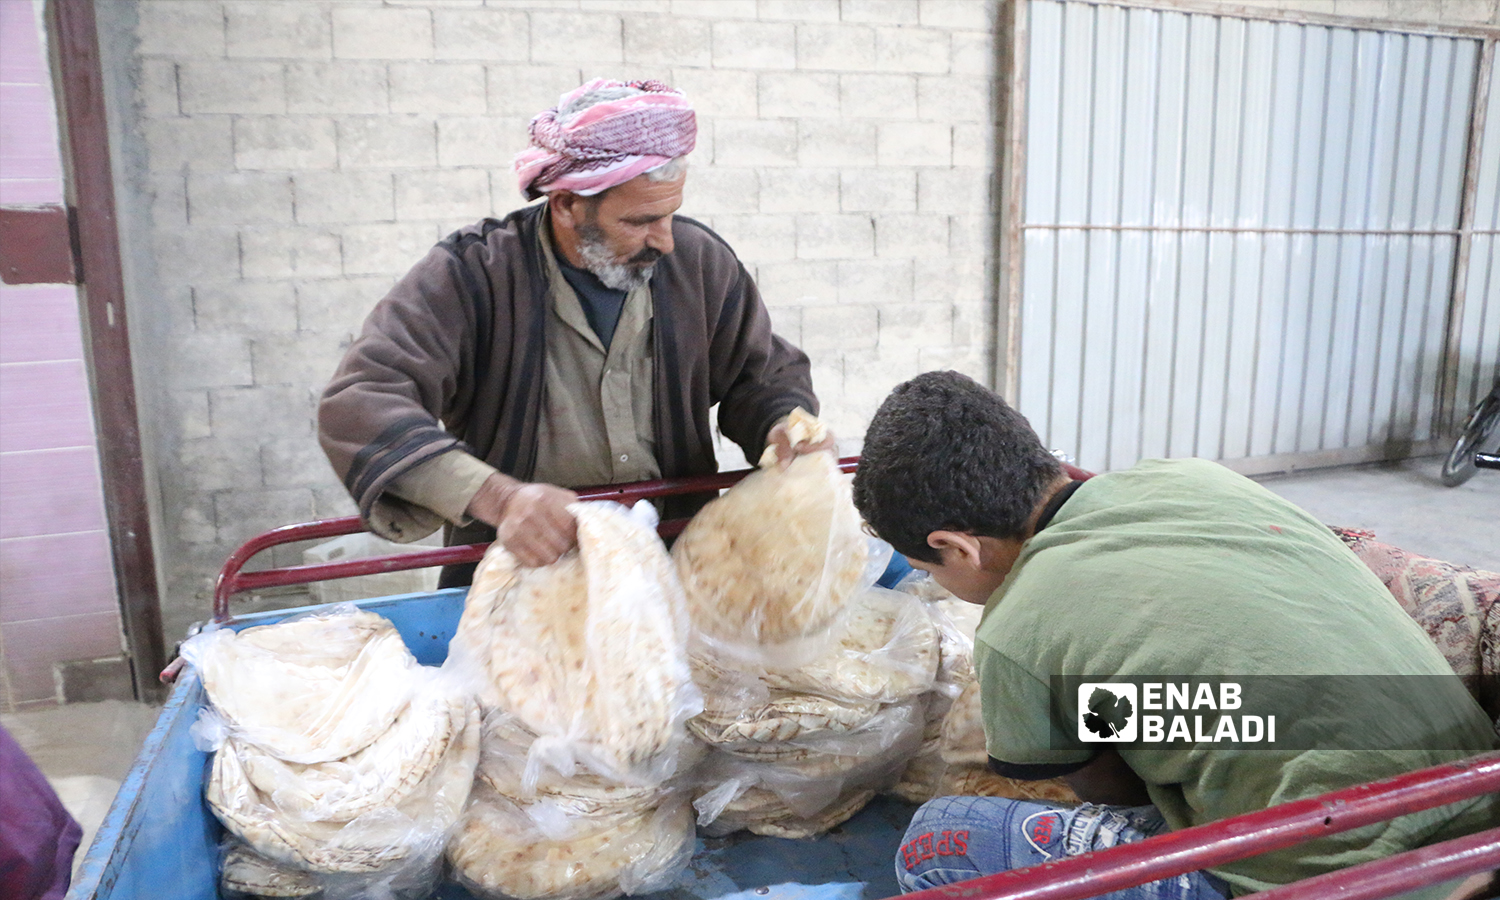 A man arranging bread pundles inside a small truck to transfer them to the selling center in al-Bab city - 8 October 2021 (Enab Baladi - Siraj Mohammed)